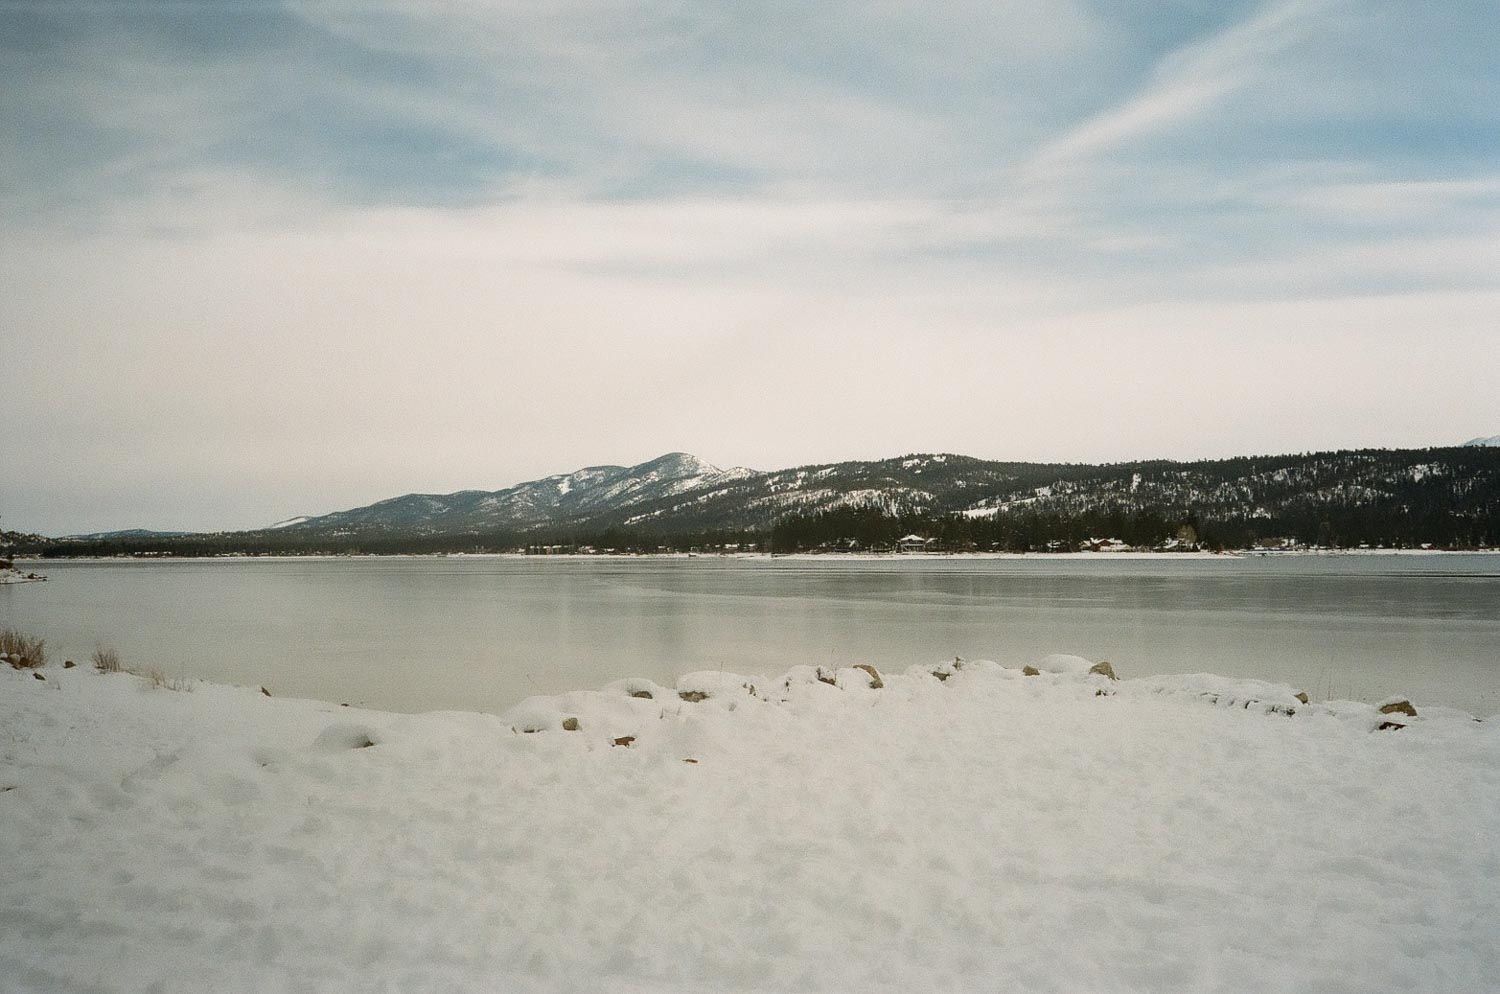 Olympus AF-1 - Big Bear Lake, Kodak Gold 200 - Simon Kim